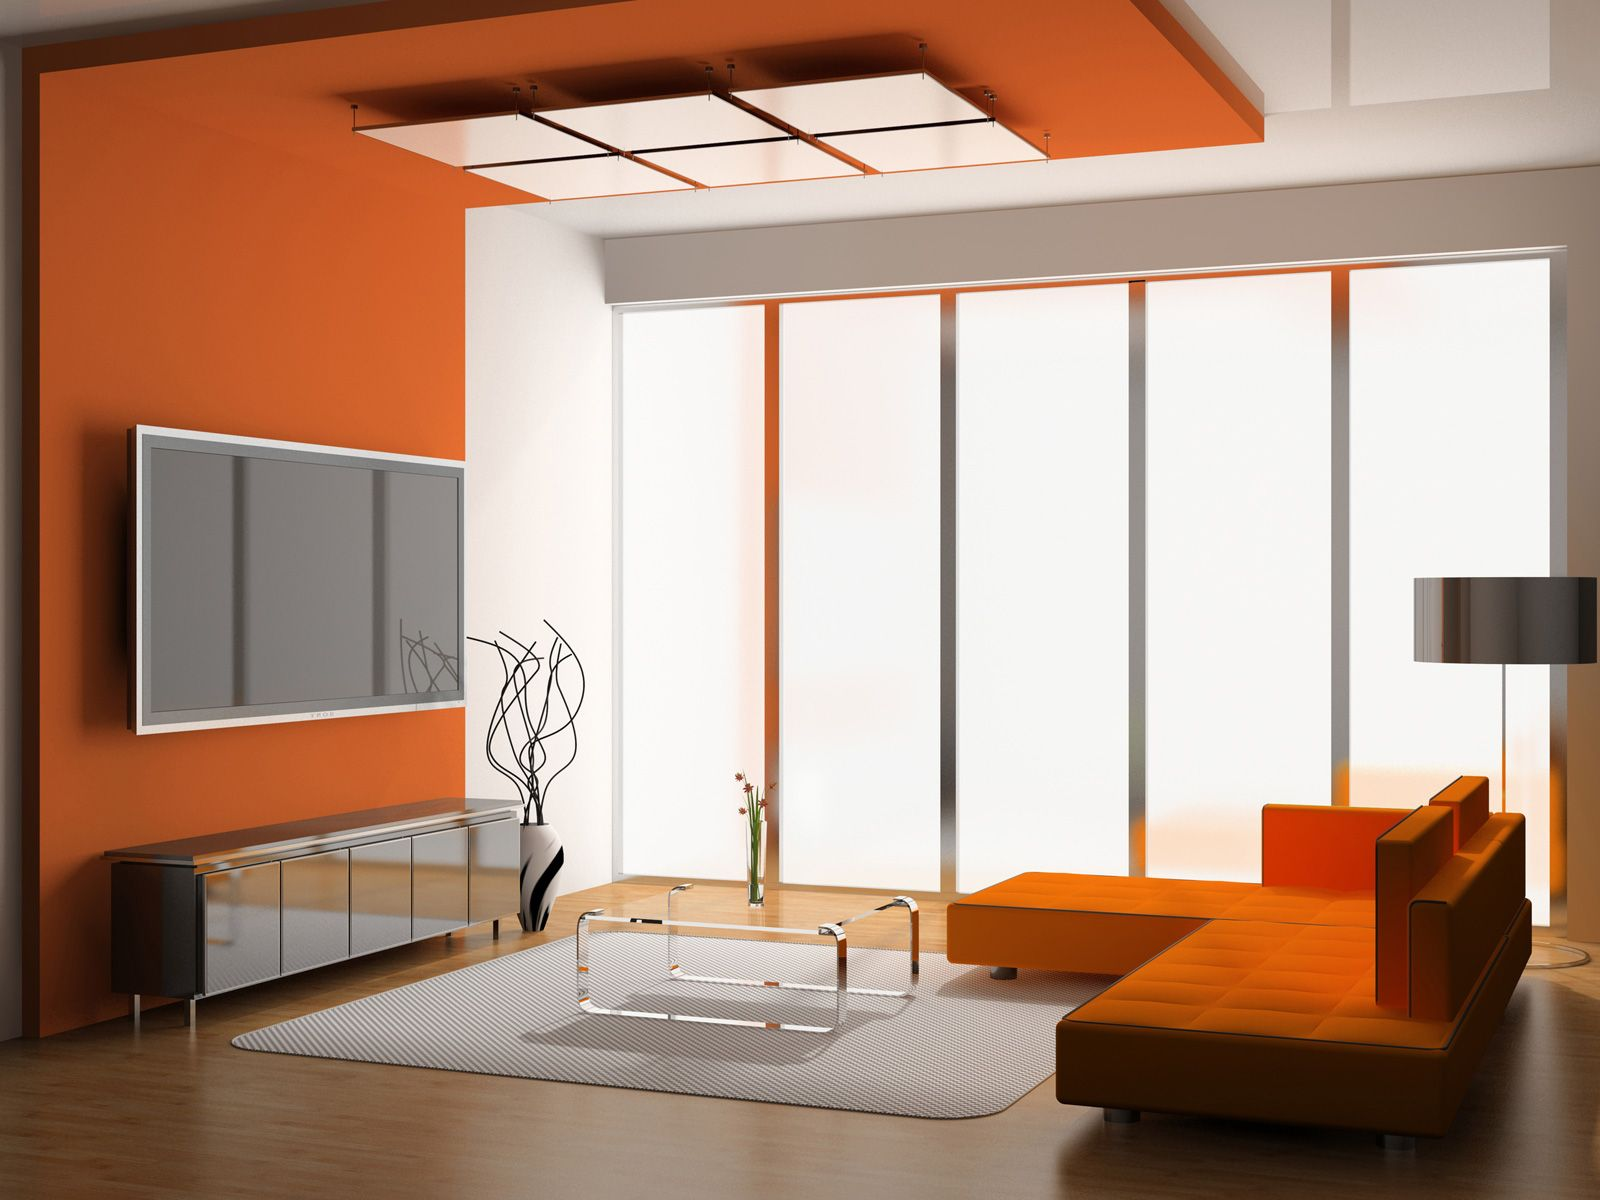 Bedroom painting ideas orange - Orange Orange And White Scheme Color Ideas For Living Room Decorating